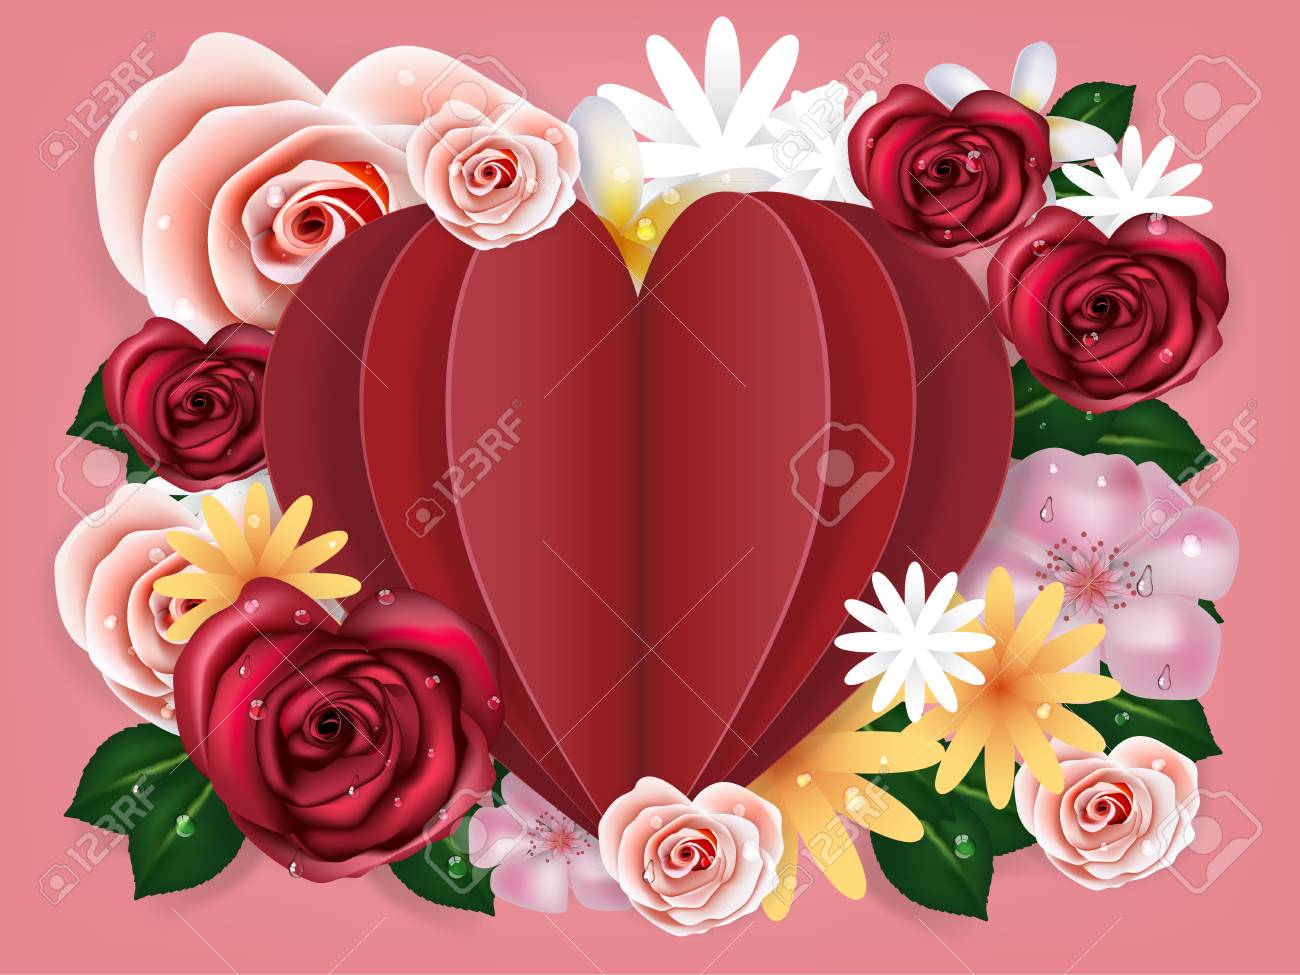 Illustration Vector Realistic Of Beautiful Rose Flowers Background